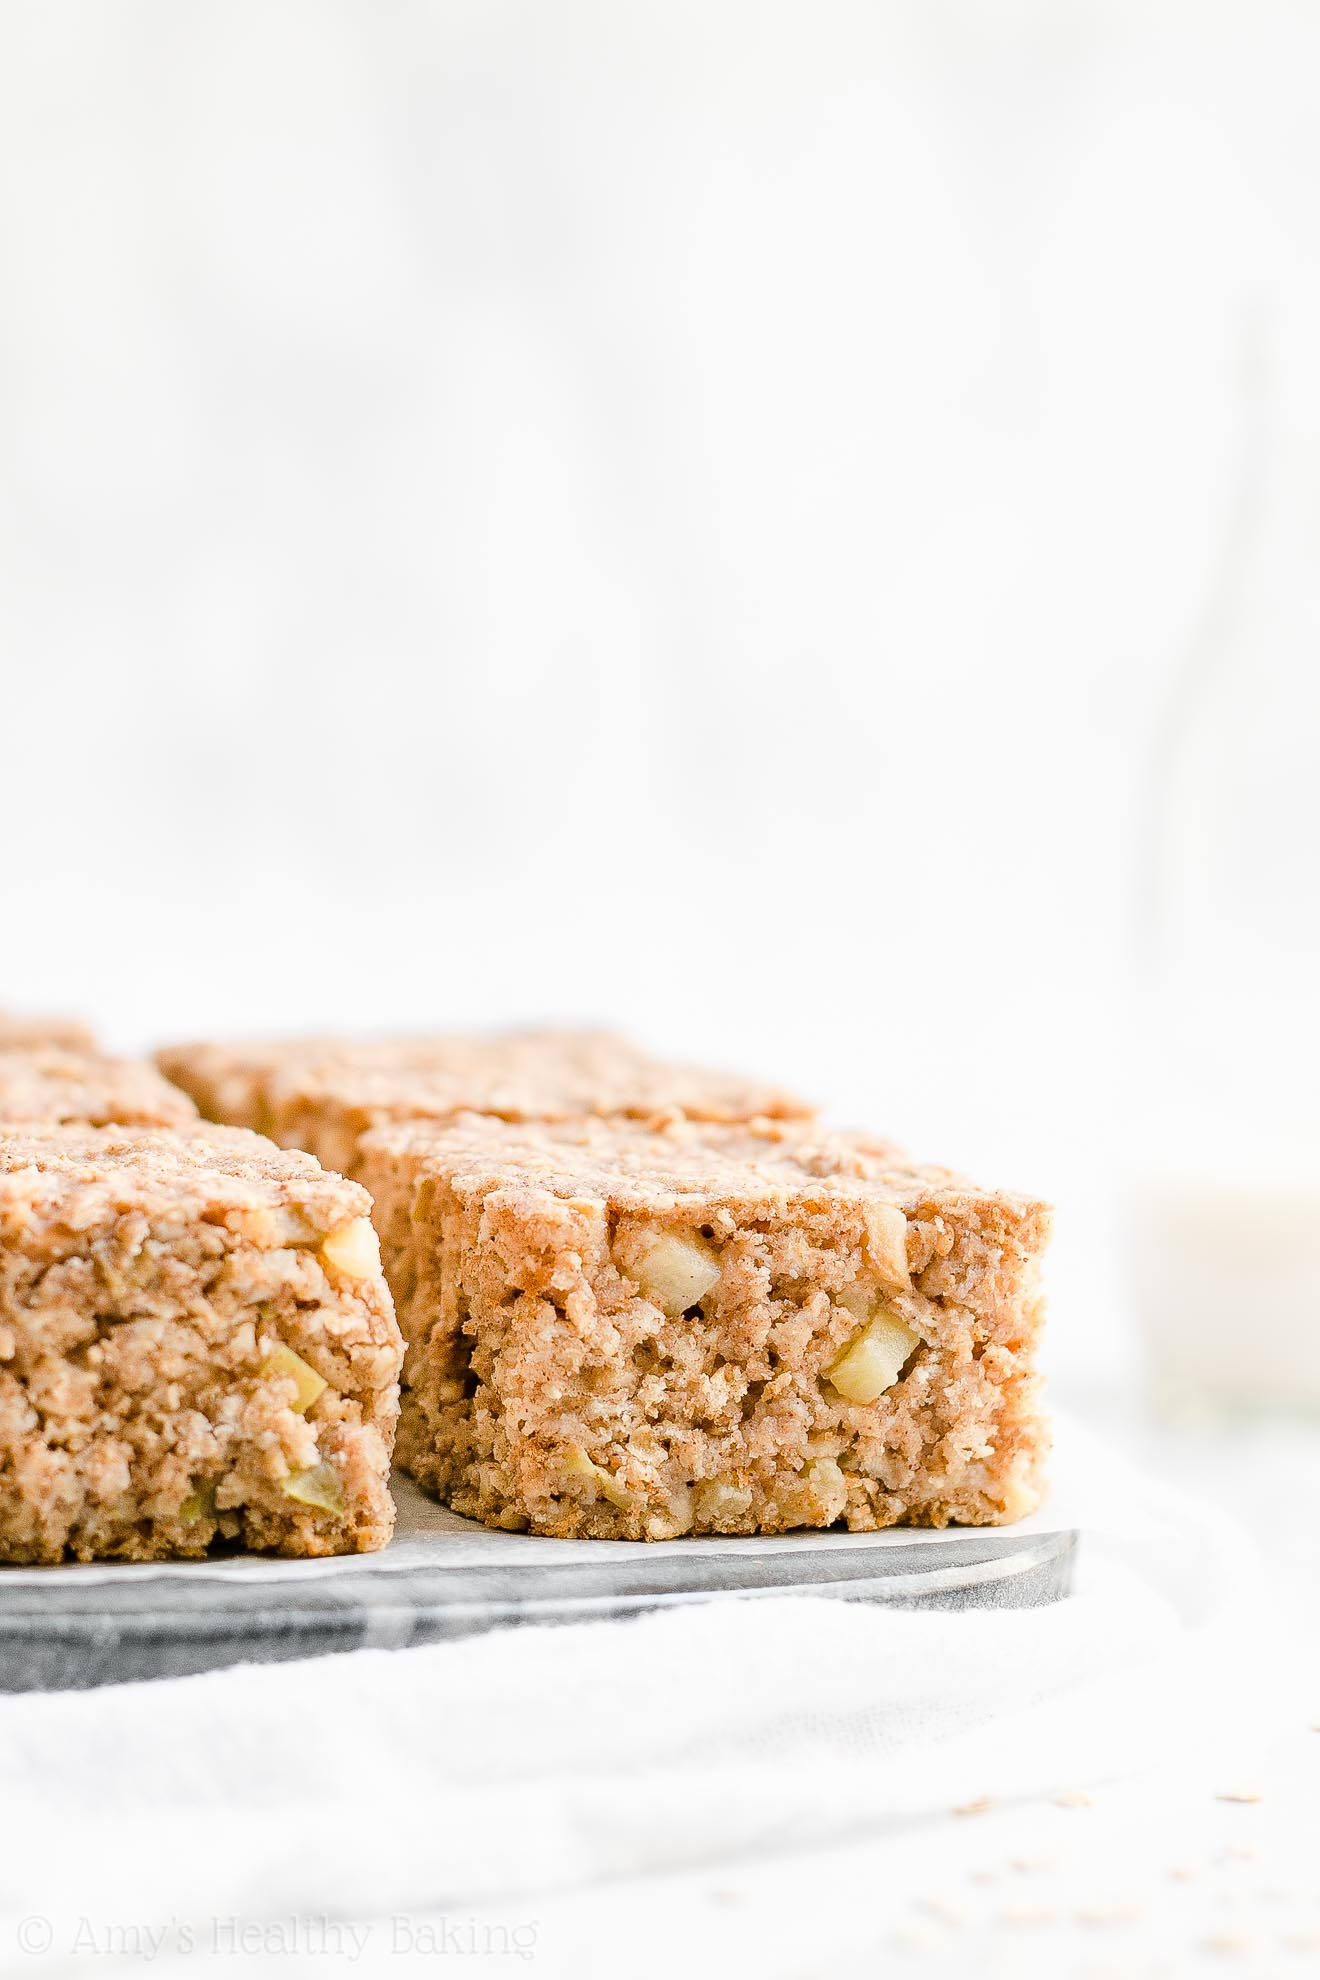 Healthy Low Fat Whole Wheat Cinnamon Apple Oatmeal Snack Cake